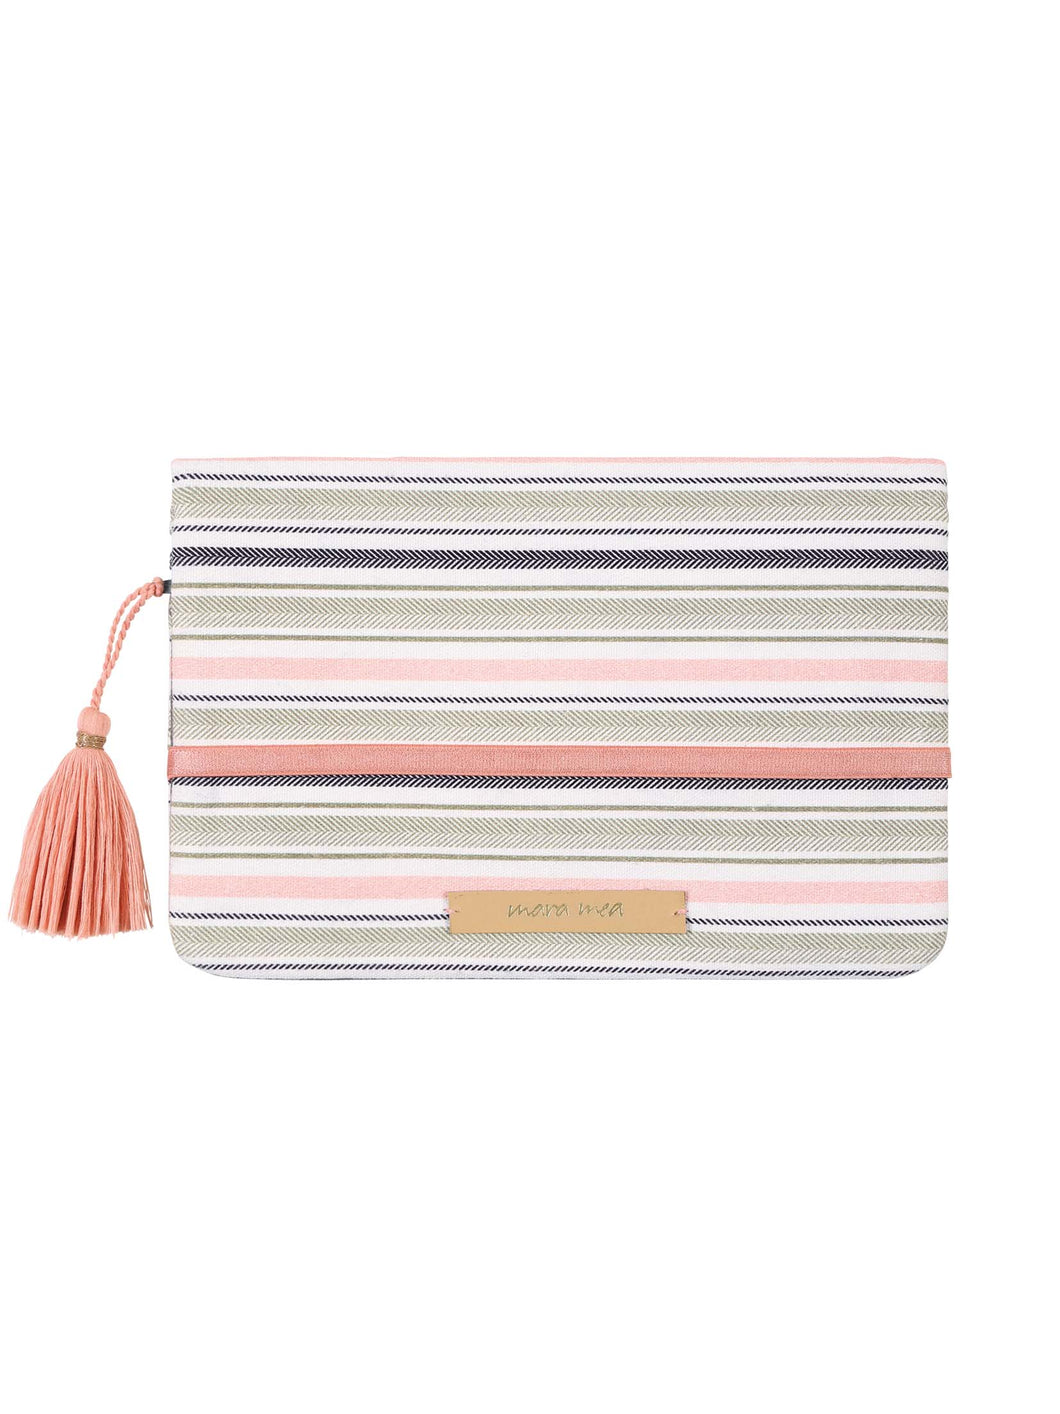 Windeltasche blissed out in bunt